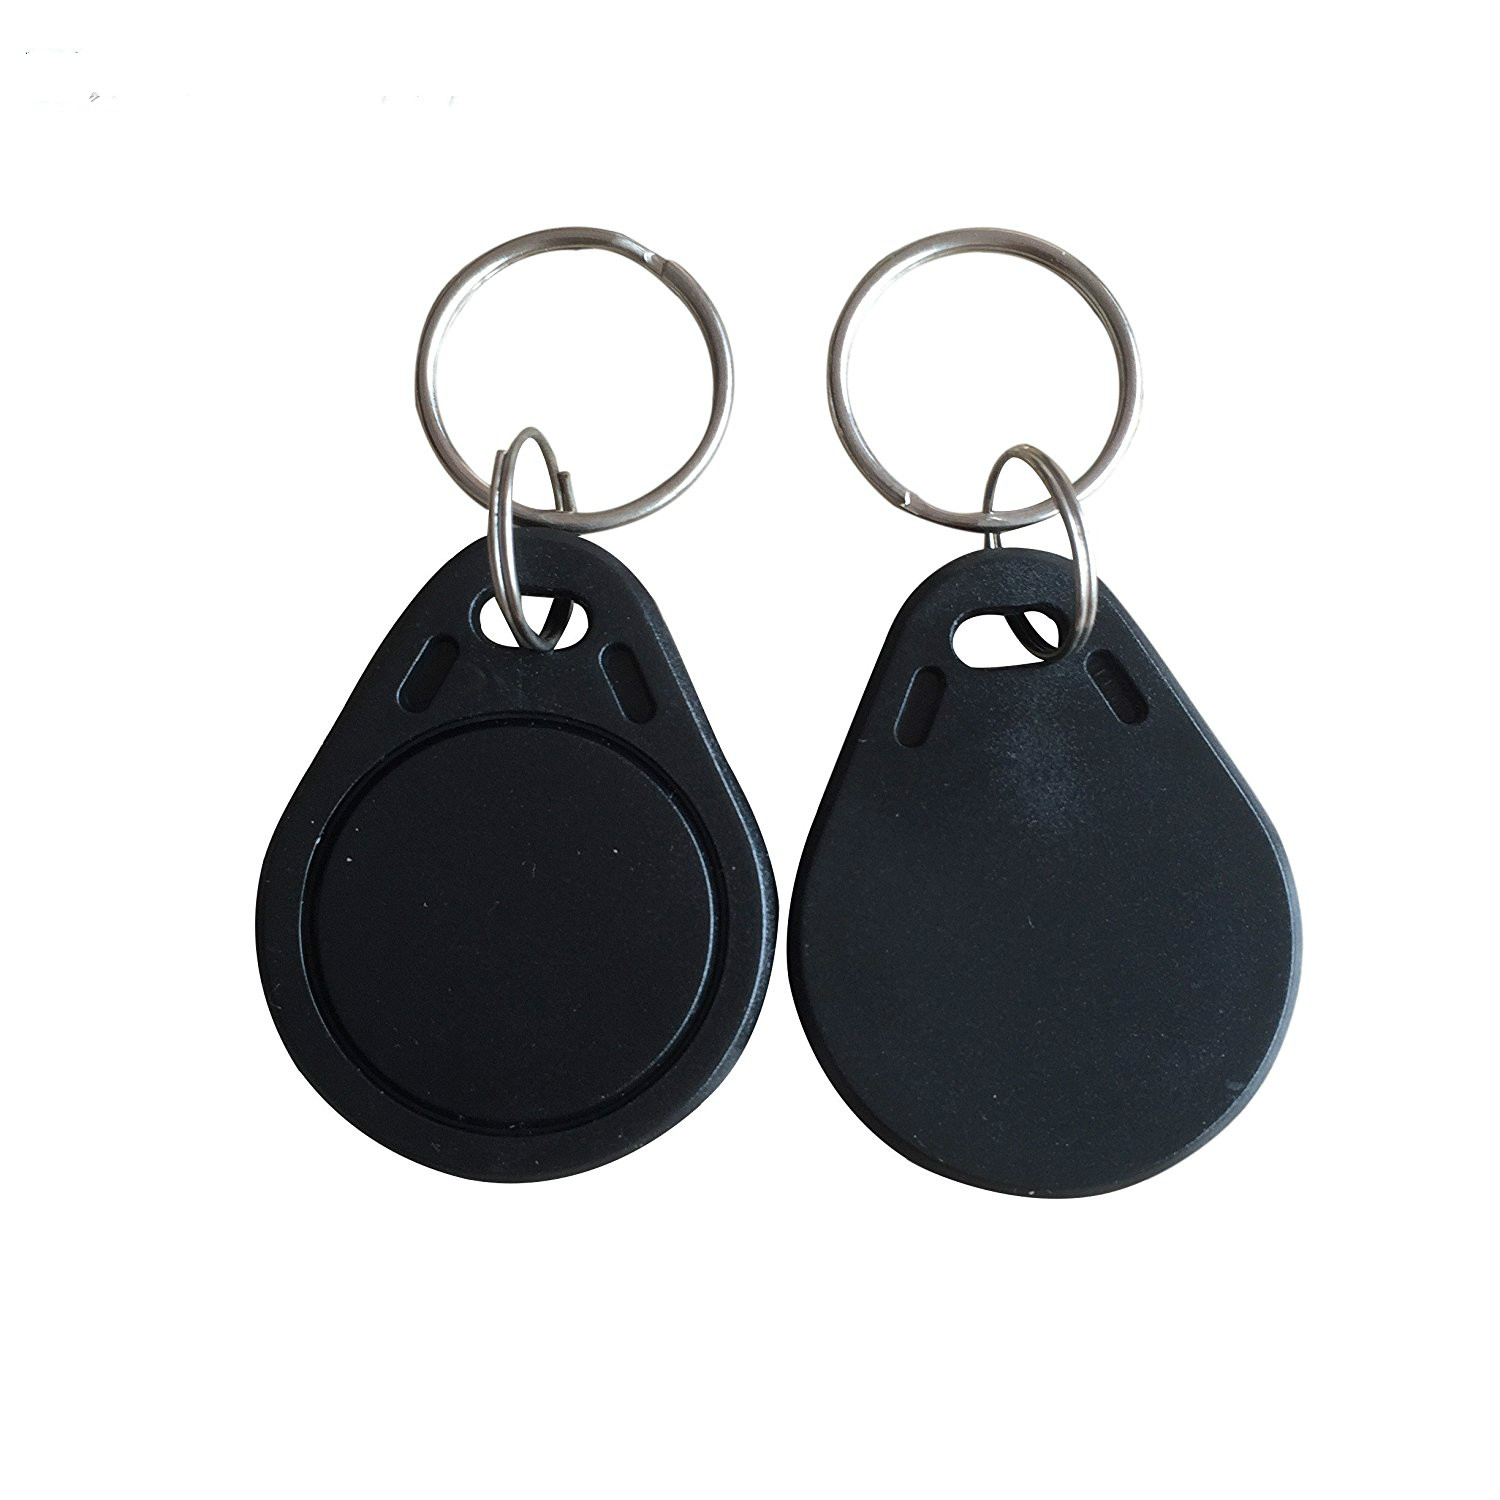 13.56MHz RFID Keychains ISO14443A RFID MF Classic 1K Keyfobs NFC Tag Black Colour key token for access control system 100PCS new design rfid ic keyfobs i3 56 mhz keychains nfc key tags iso14443a rfid mf classic 1k tag for smart access control system